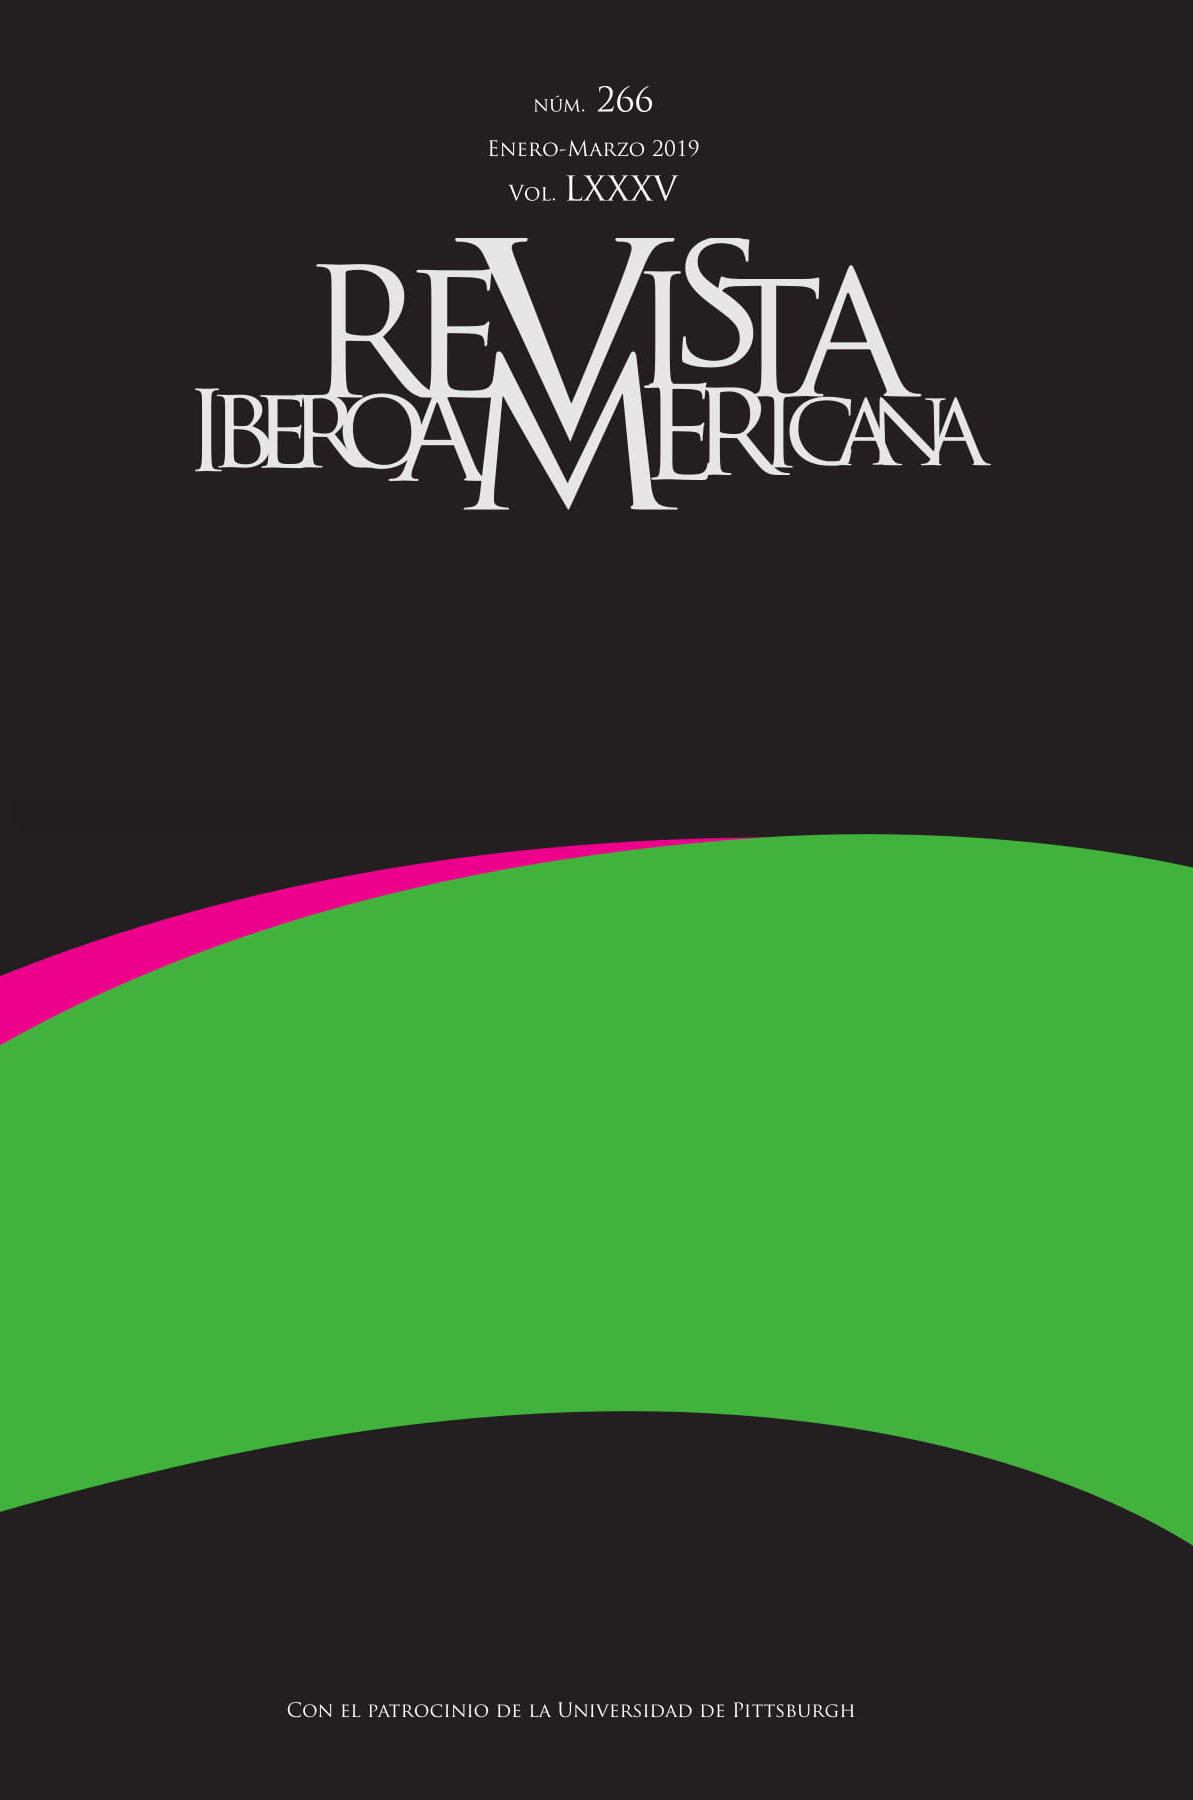 Journal Cover - Title in grey lettering over a thick curve of green and pink against a dark grey background.